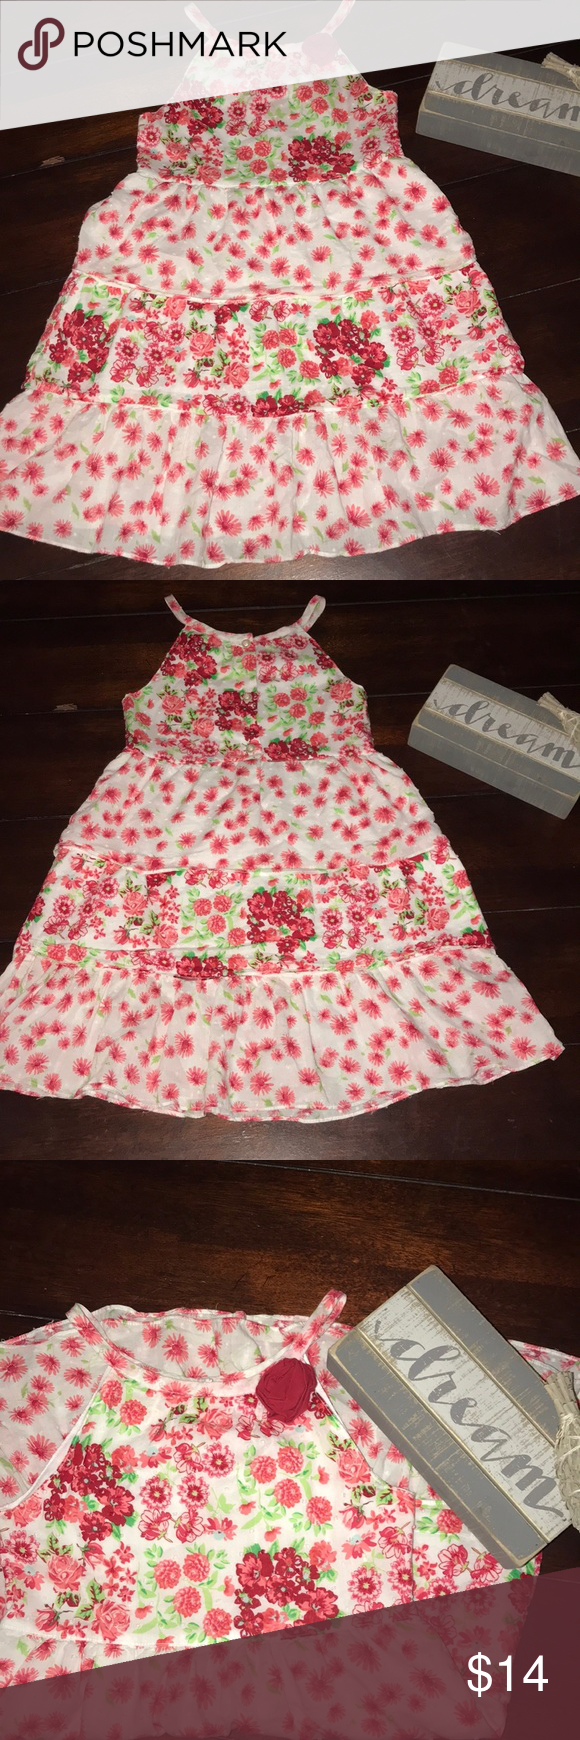 be6bf6b57 Penelope Mack floral dress Cute Penelope Mack 3tier floral dress Size 6 EUC  No stains or holes Smoke free home Bundle to save Penelope Mack Dresses  Casual